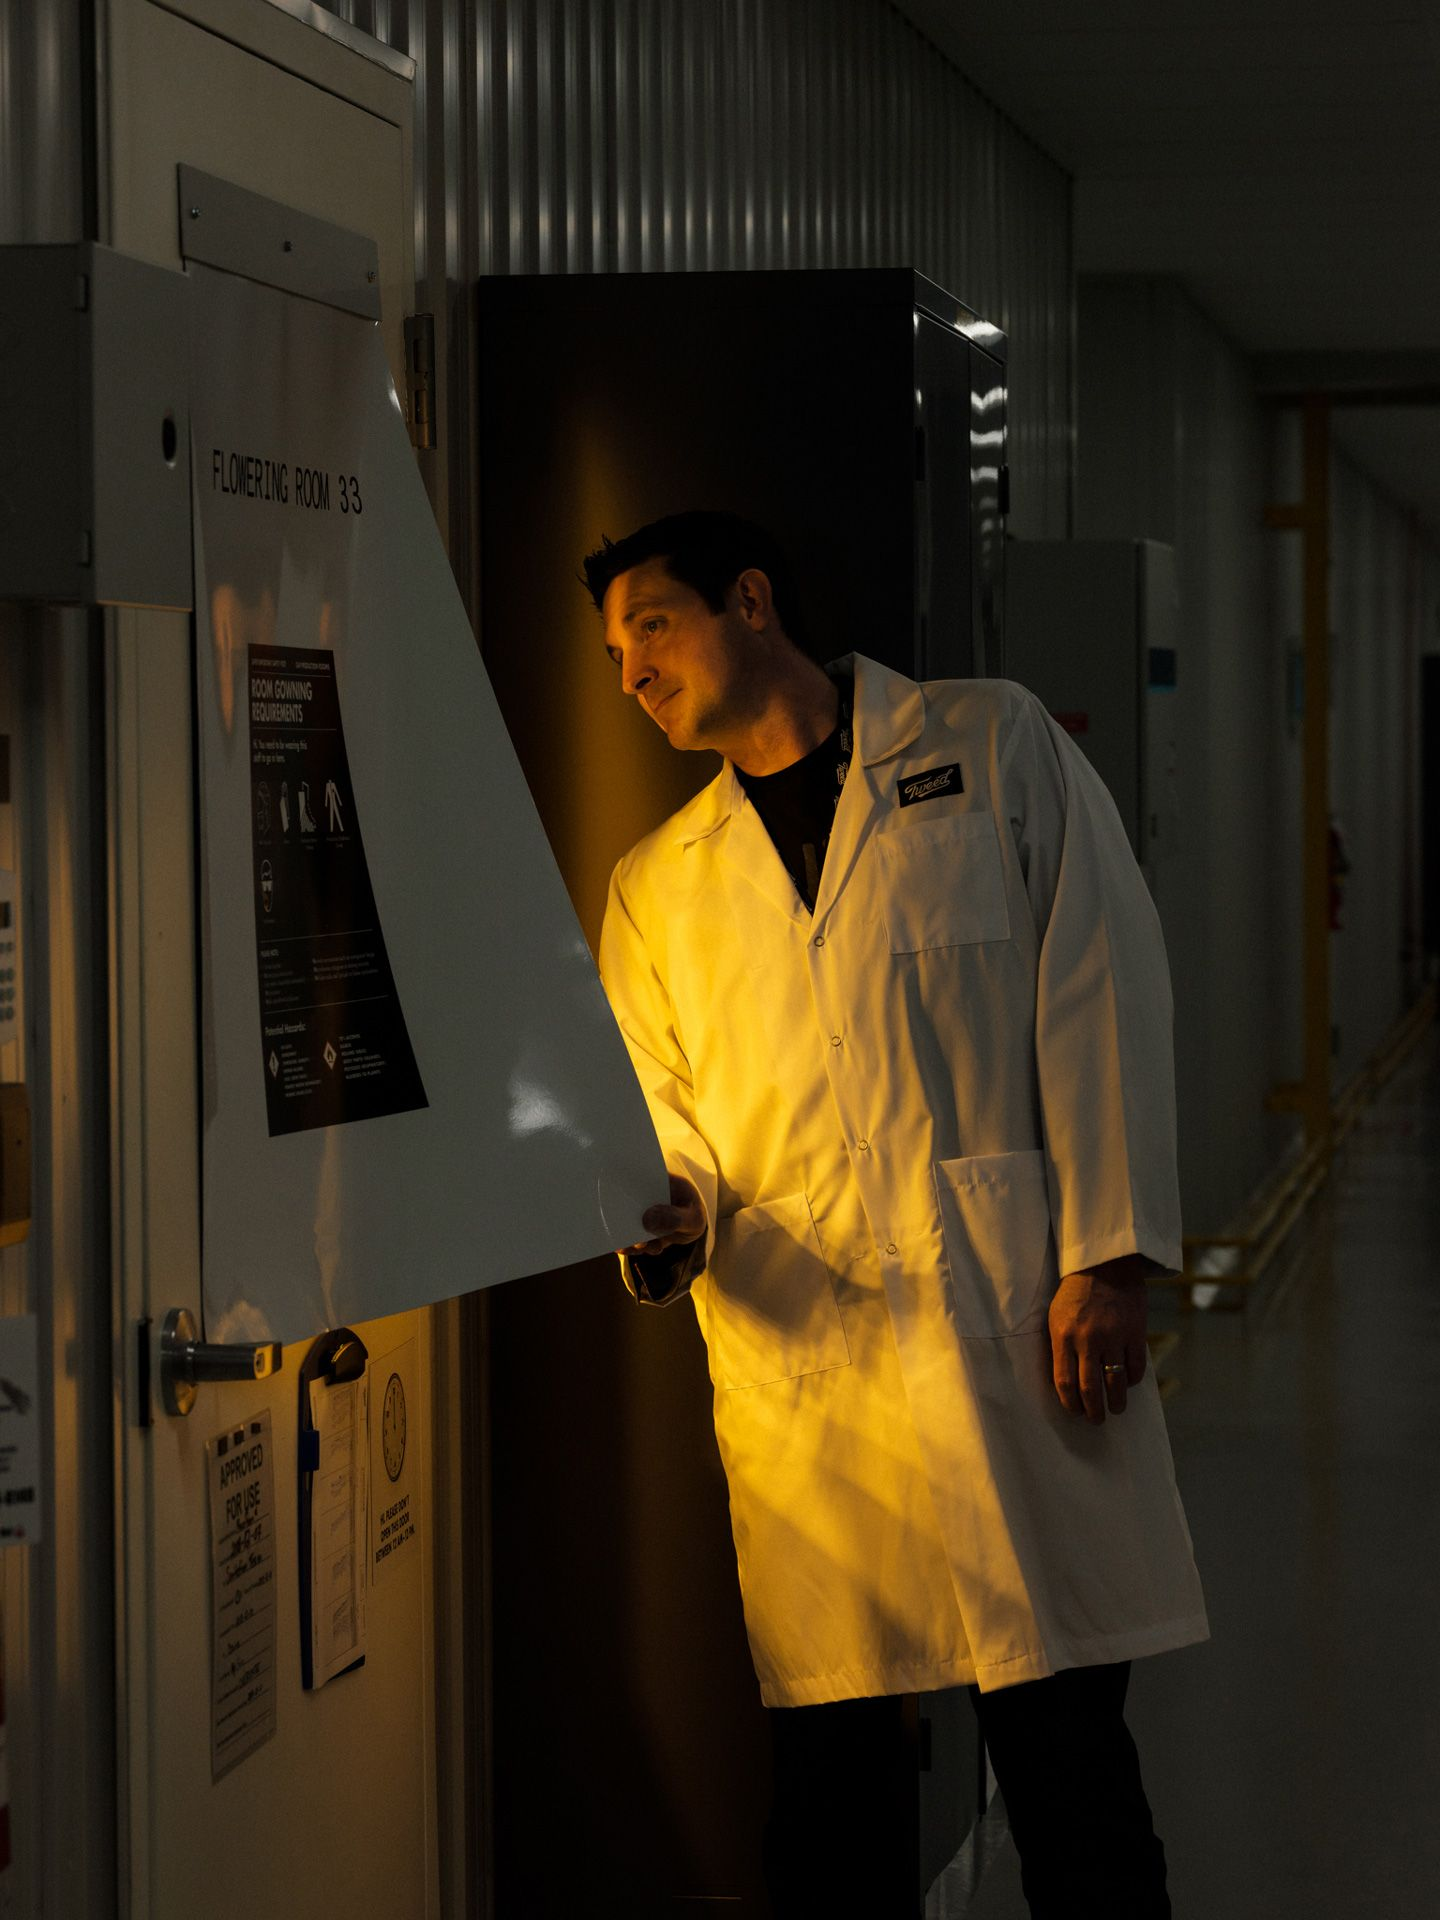 scientist looking in a growing tank illuminated by orange light by Alexi Hobbs at Tweed HQ for Bloomberg Businessweek